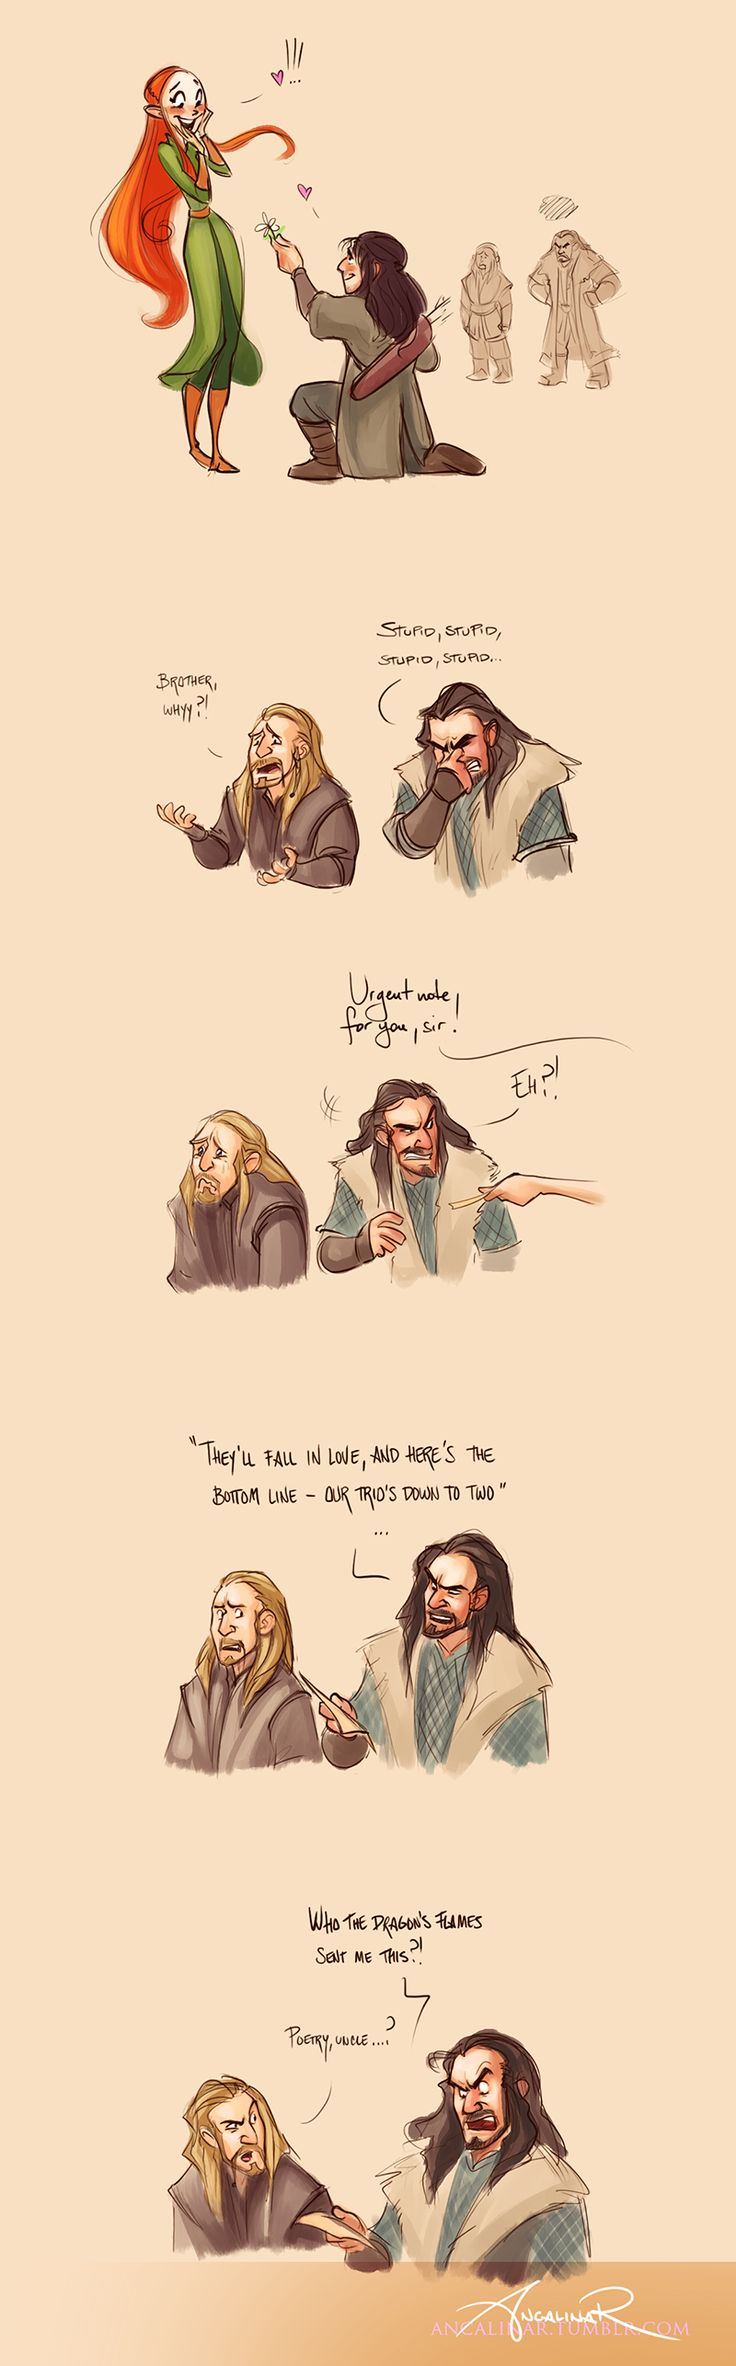 by ancalinar on deviantart Poetry is even funnier if you know Dean played Bragi, God of poetry in The Almighty Johnsons